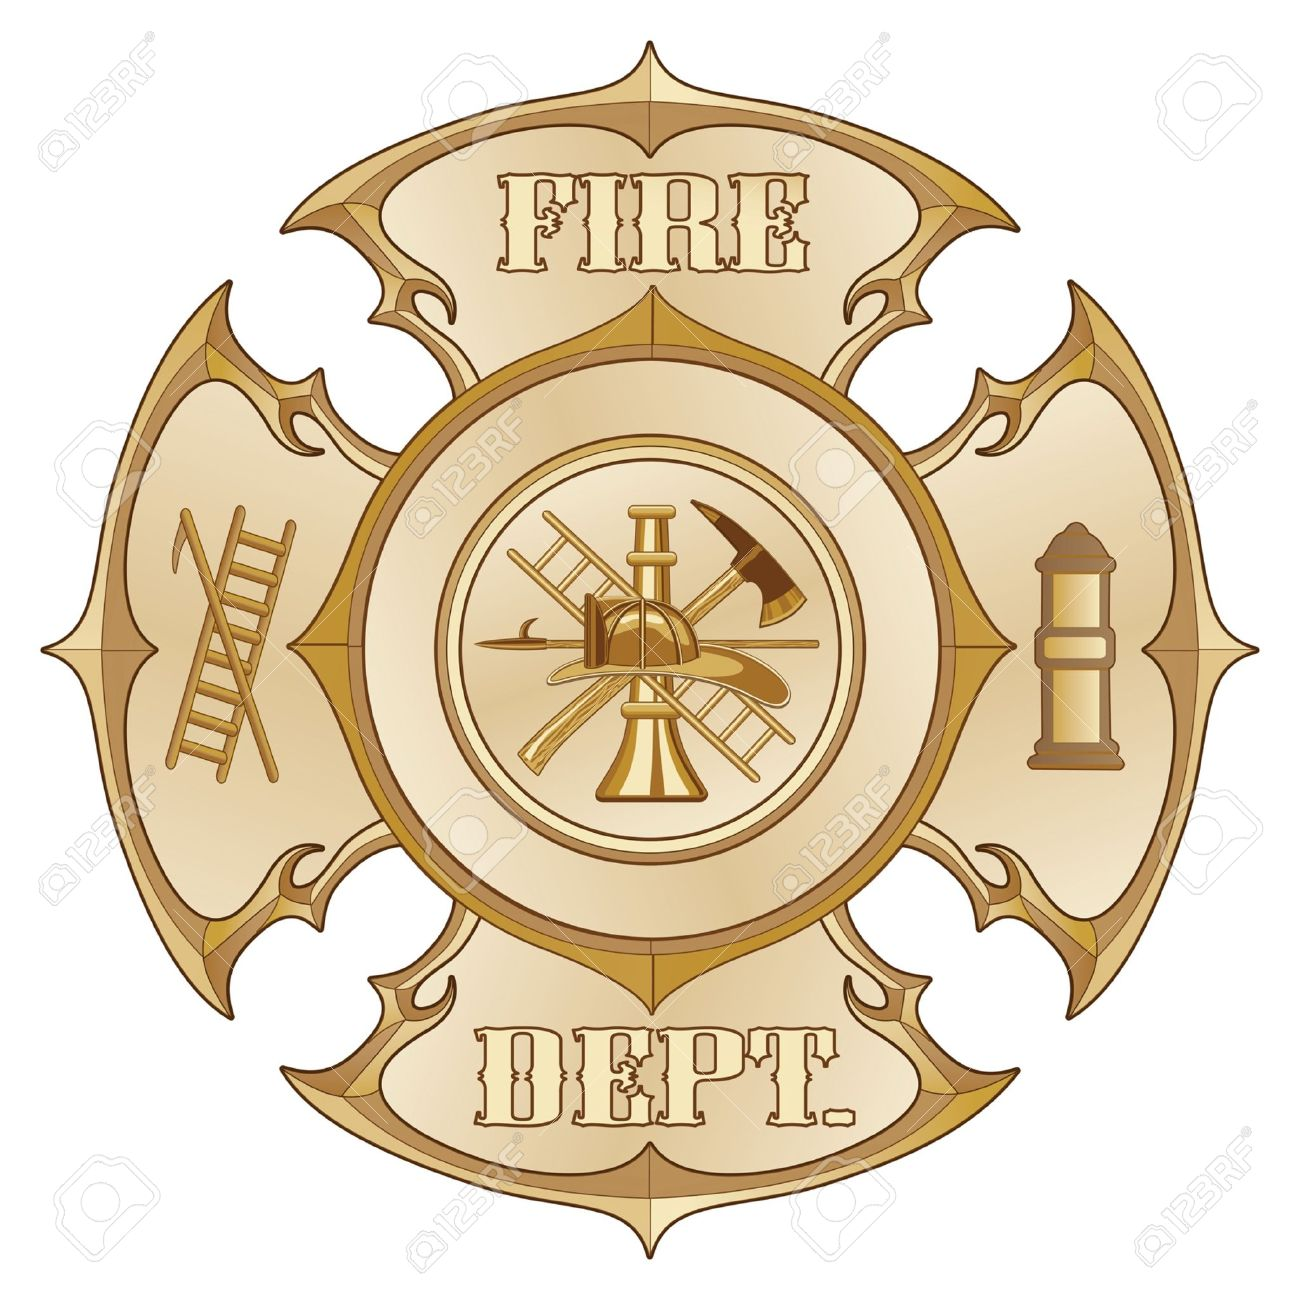 Fire Department Cross Vintage Gold is an illustration of a vintage